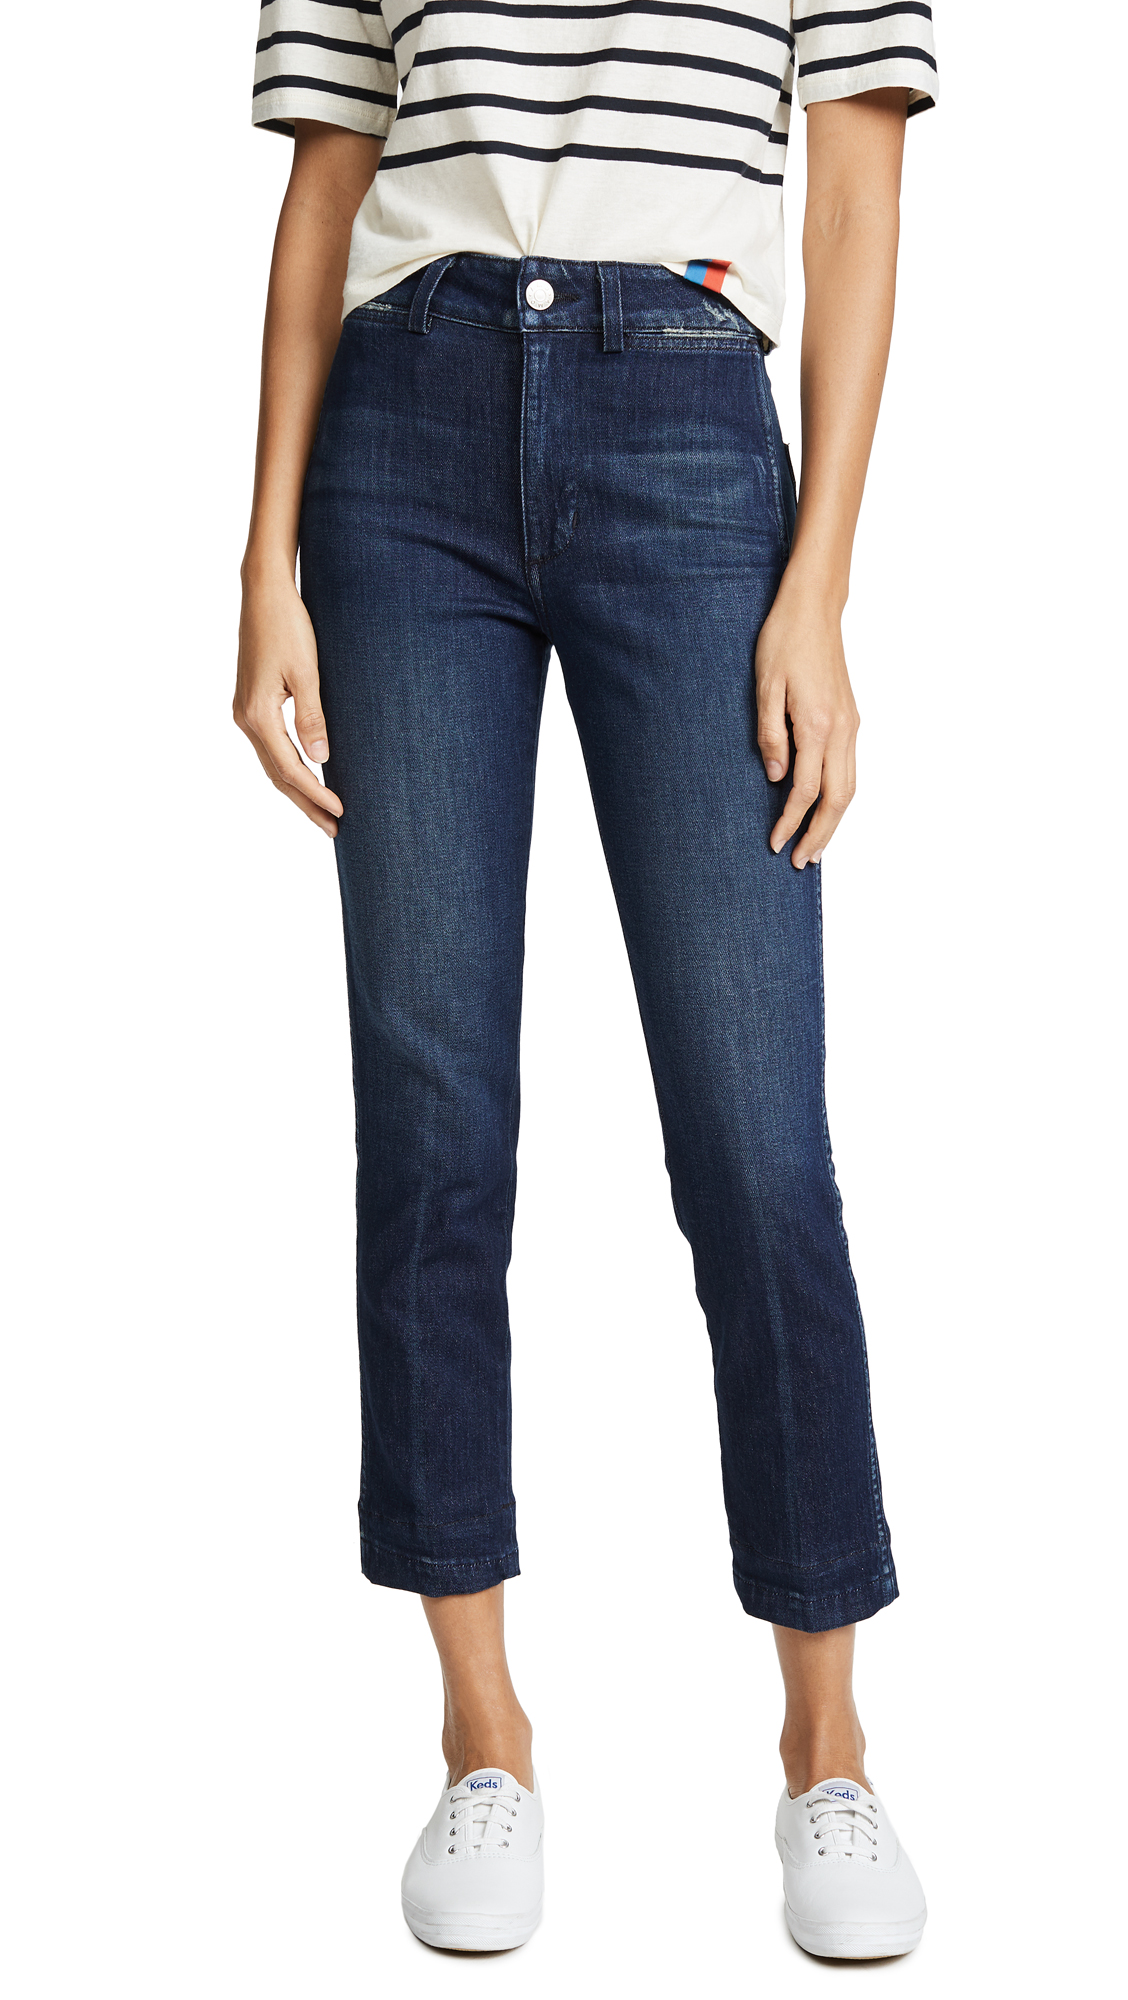 AMO Audrey High Rise Cigarette Jeans In Eclipse